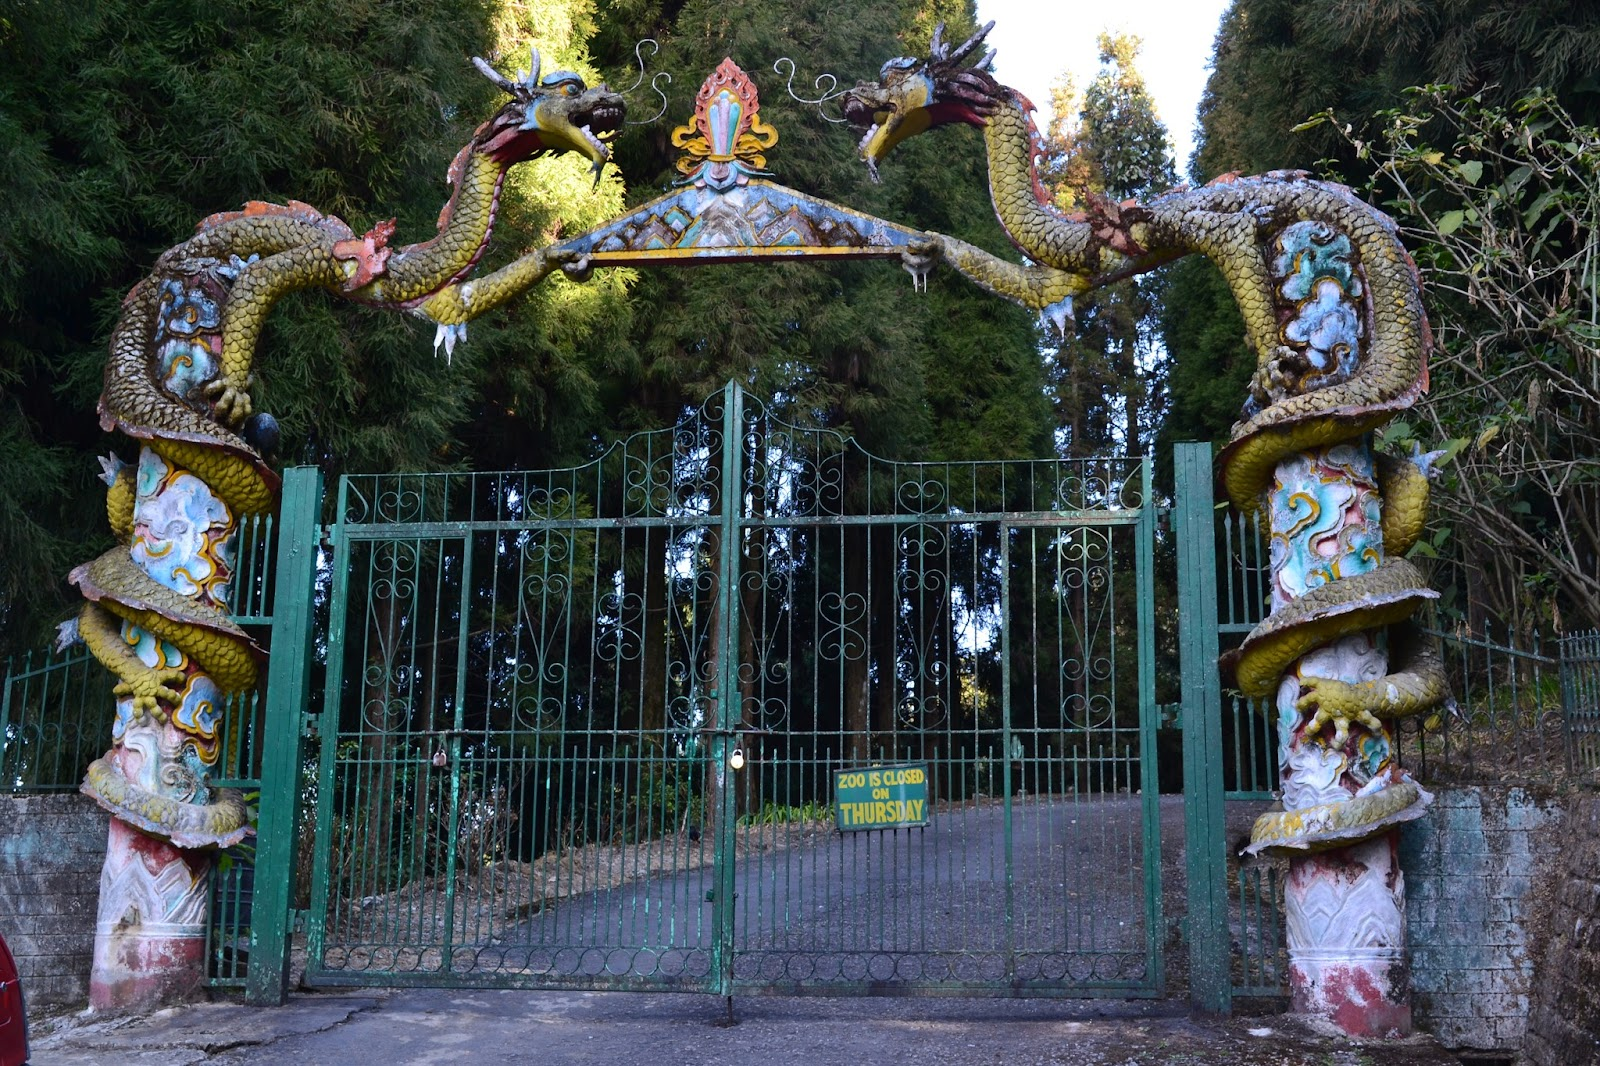 Entrance of Sikkim Himalayan Zoological Park